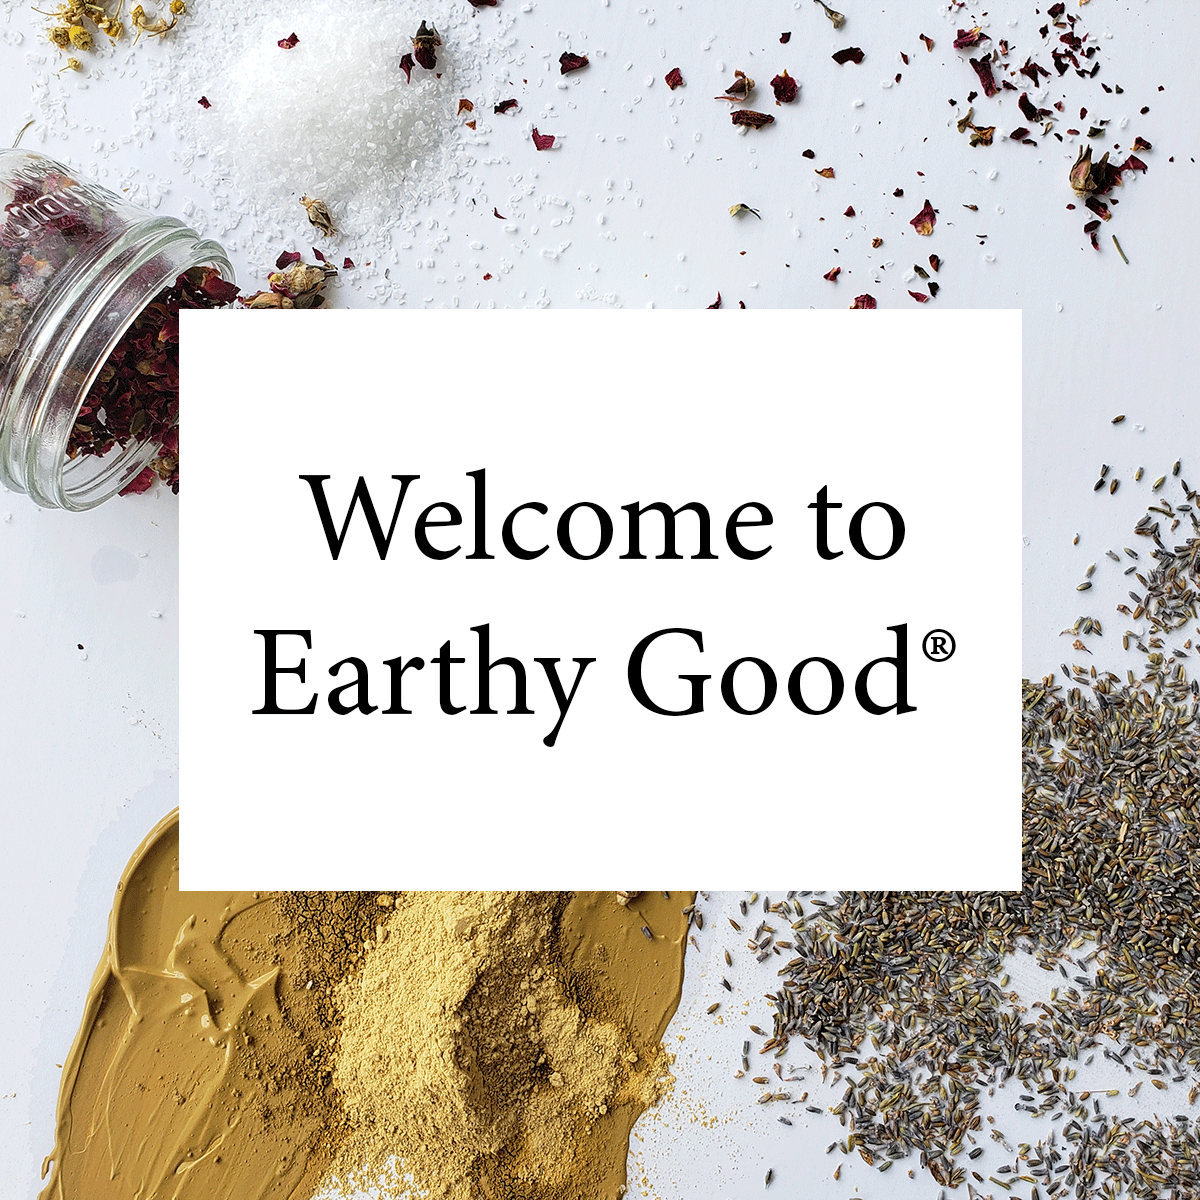 Welcome to Earthy Good!